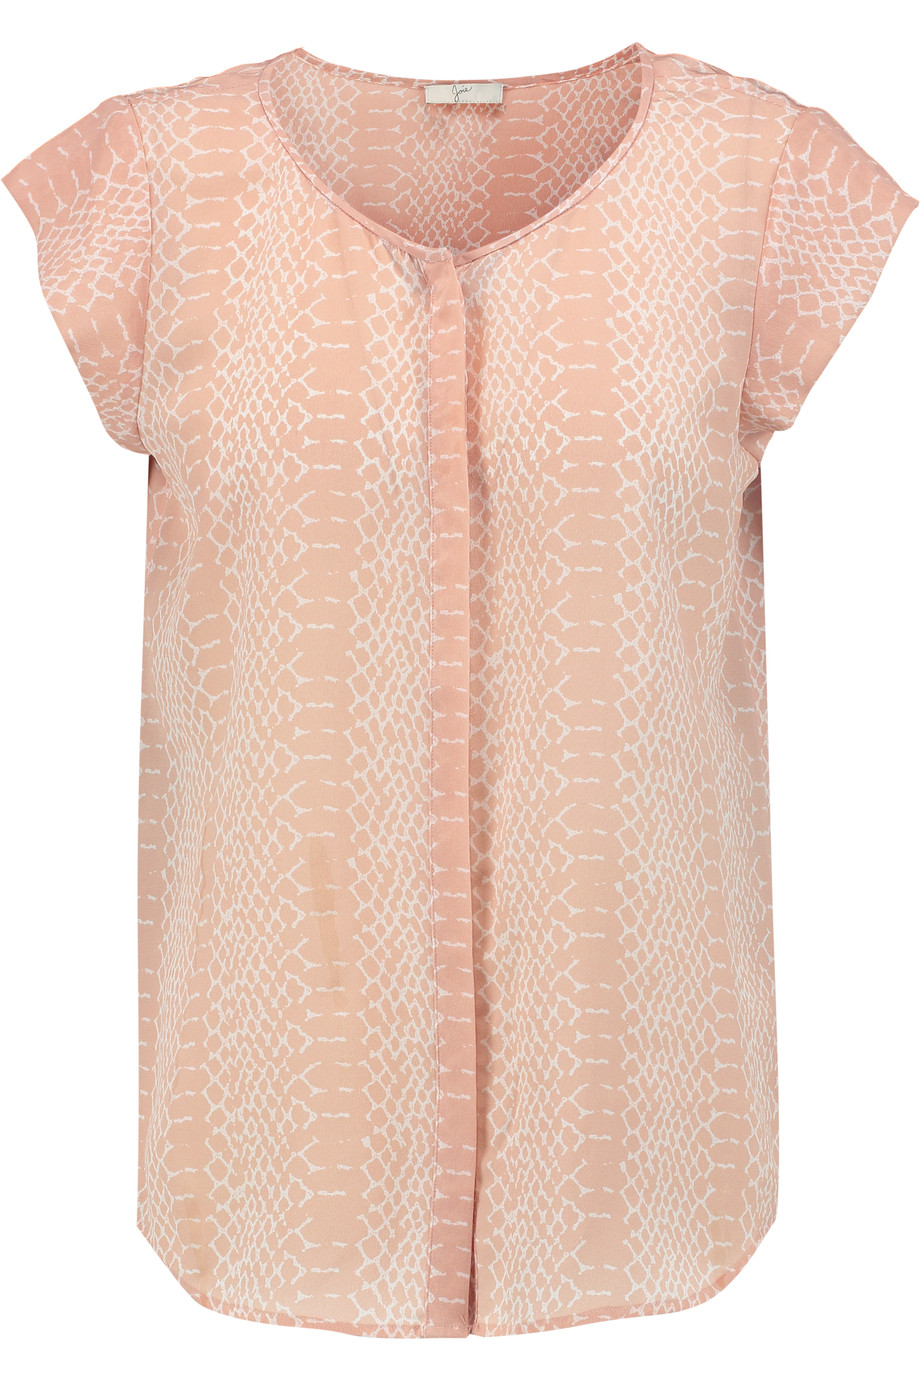 Iva snake-print washed-silk top | Joie | US | THE OUTNET